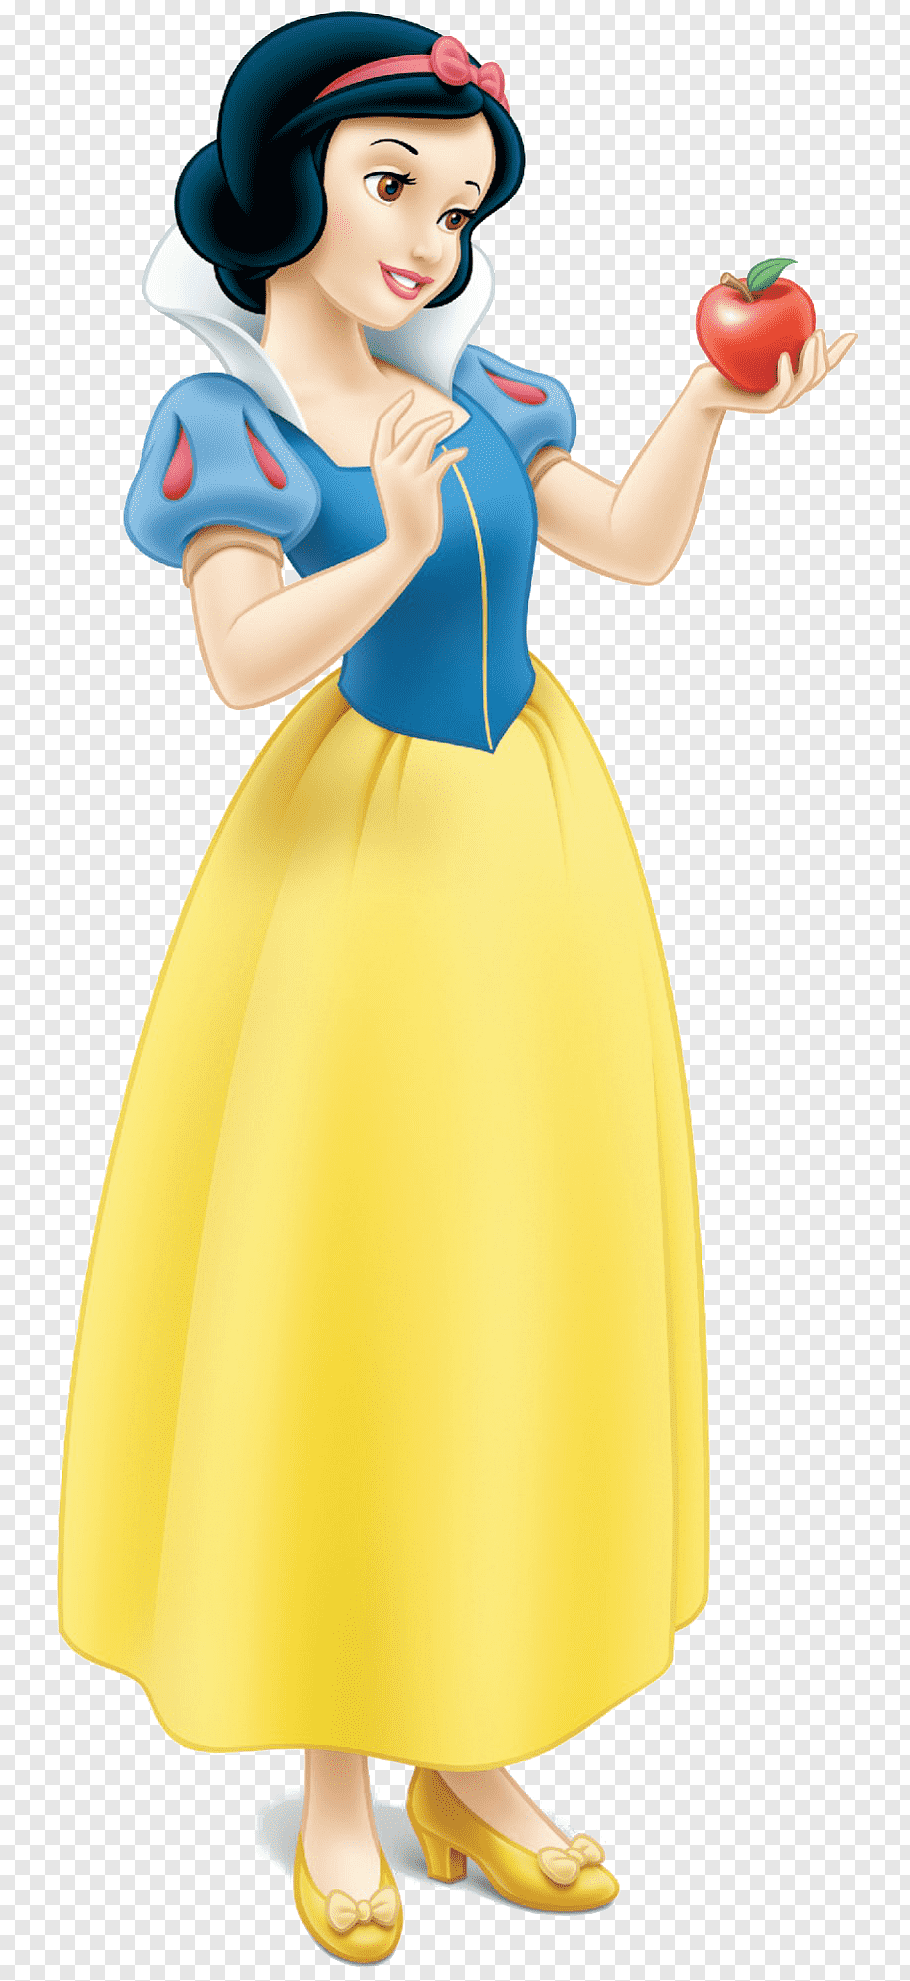 Snow White Holding Apple Fruit Snow White And The Seven Dwarfs Disney Princess The Walt Disney Compa Disney Princess Snow White Snow White Disney Princess Png